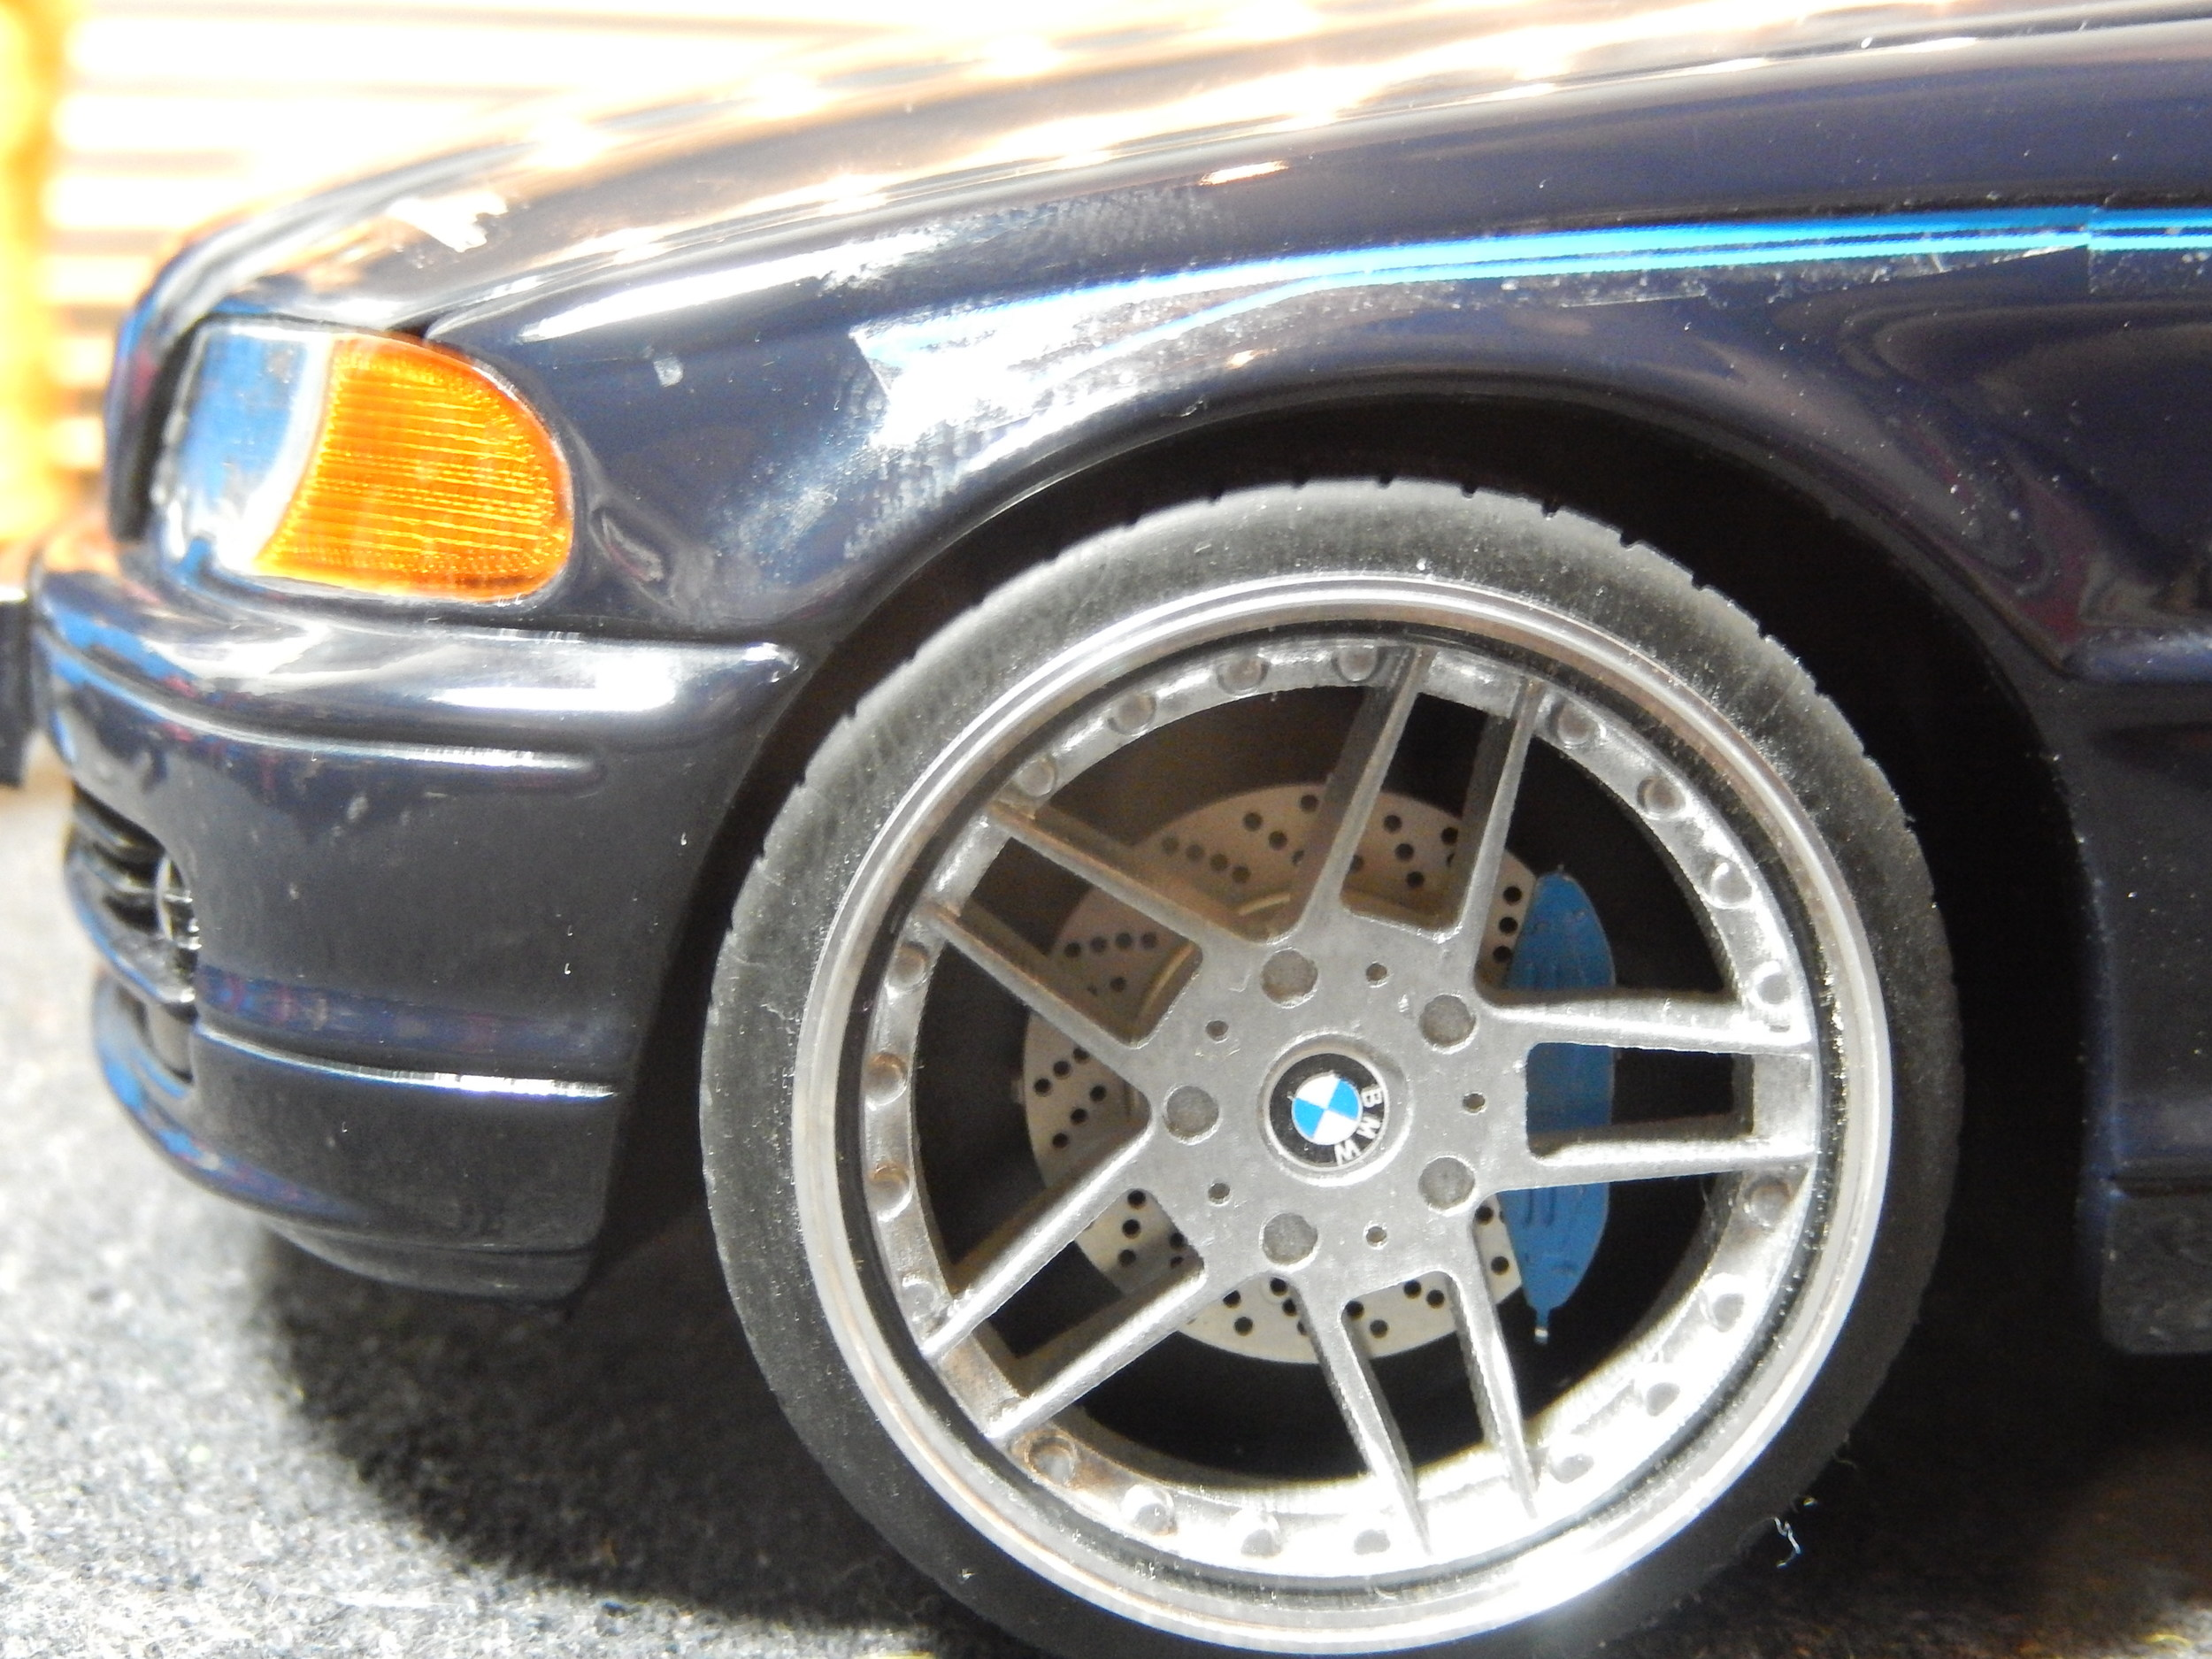 Bmw E46 328ci Schintzer Code 3 By Kyosho Boxed1 18 Total One Off Modified Tuning Umbau Cs Diecast Tuning